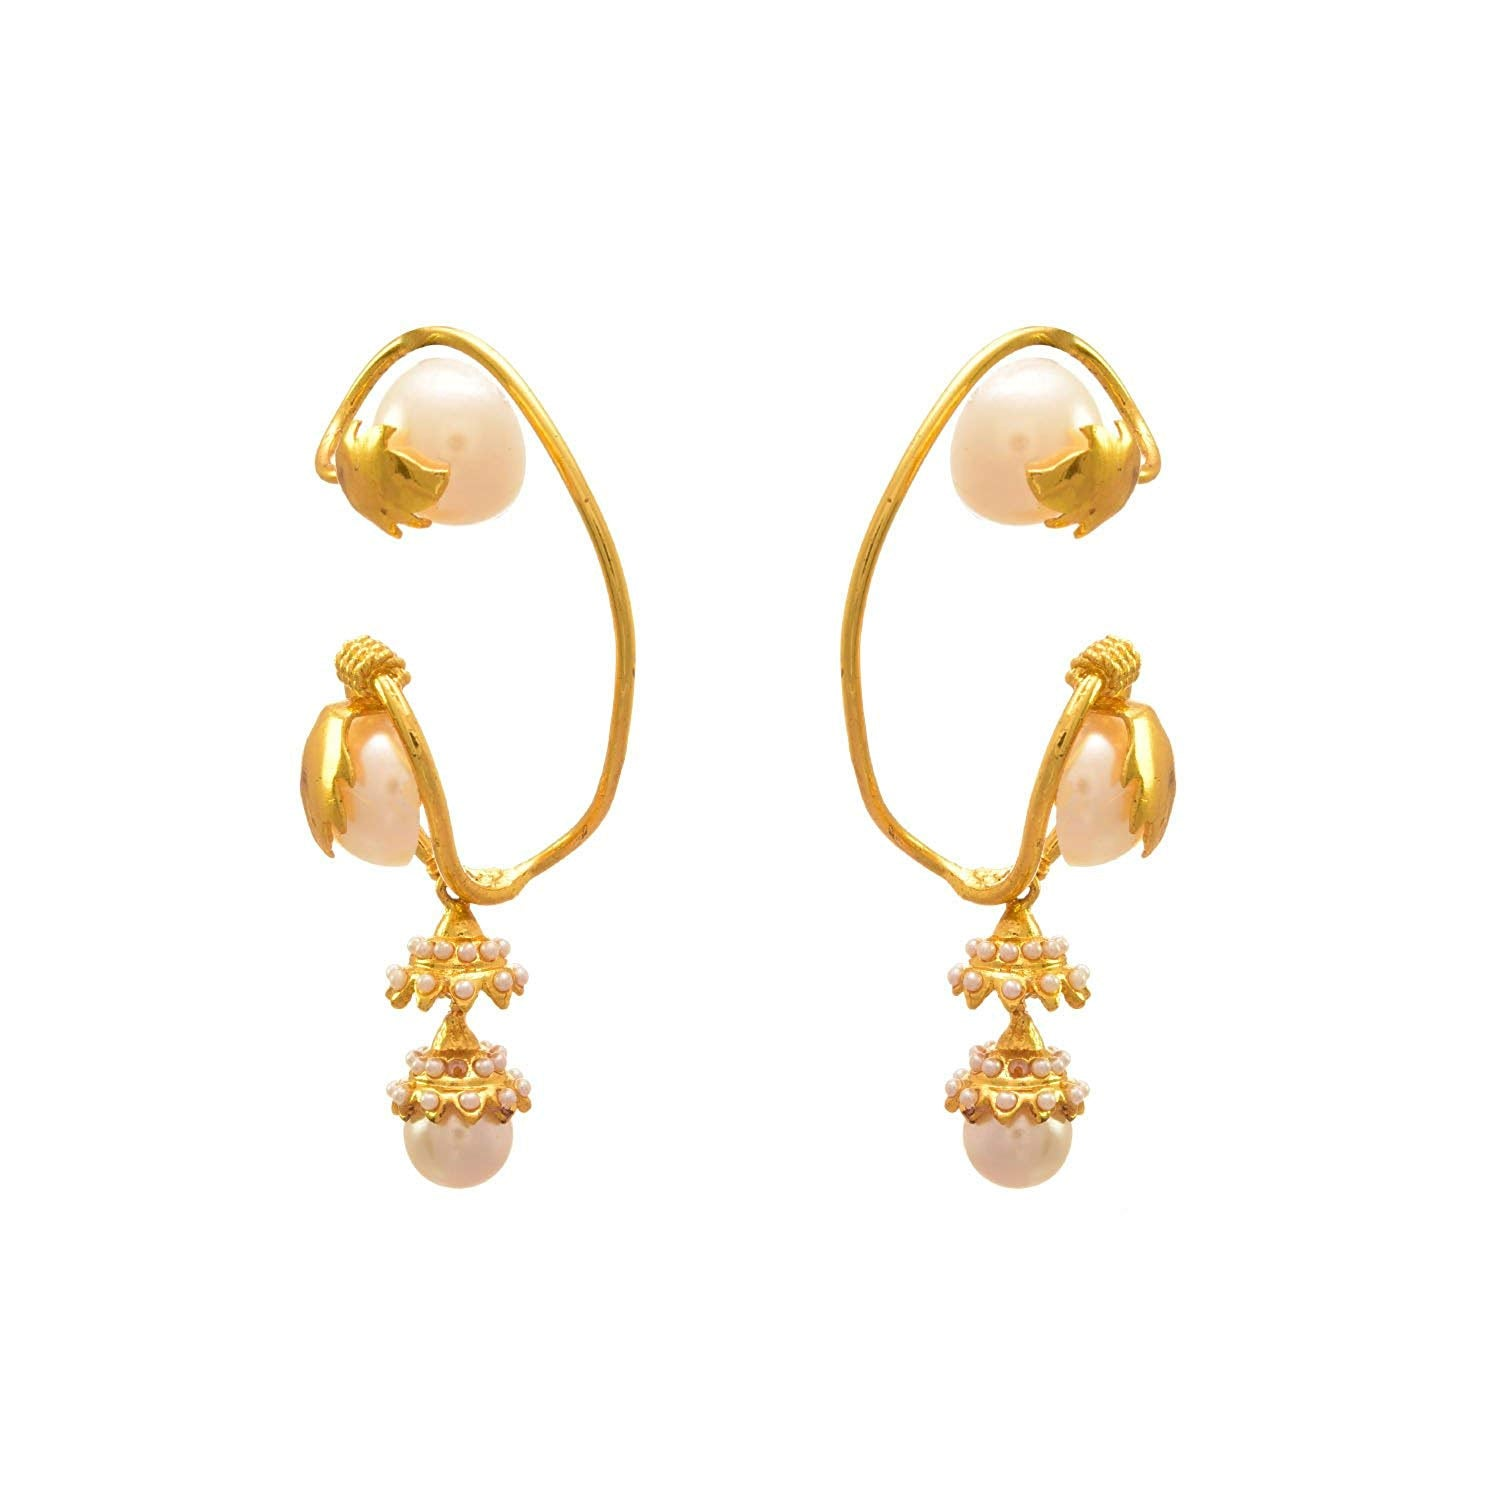 JFL-  Jewellery For Less Grand Glorious One Gram Gold Plated Pearls Dangler Ear Cuff Earrings For Women